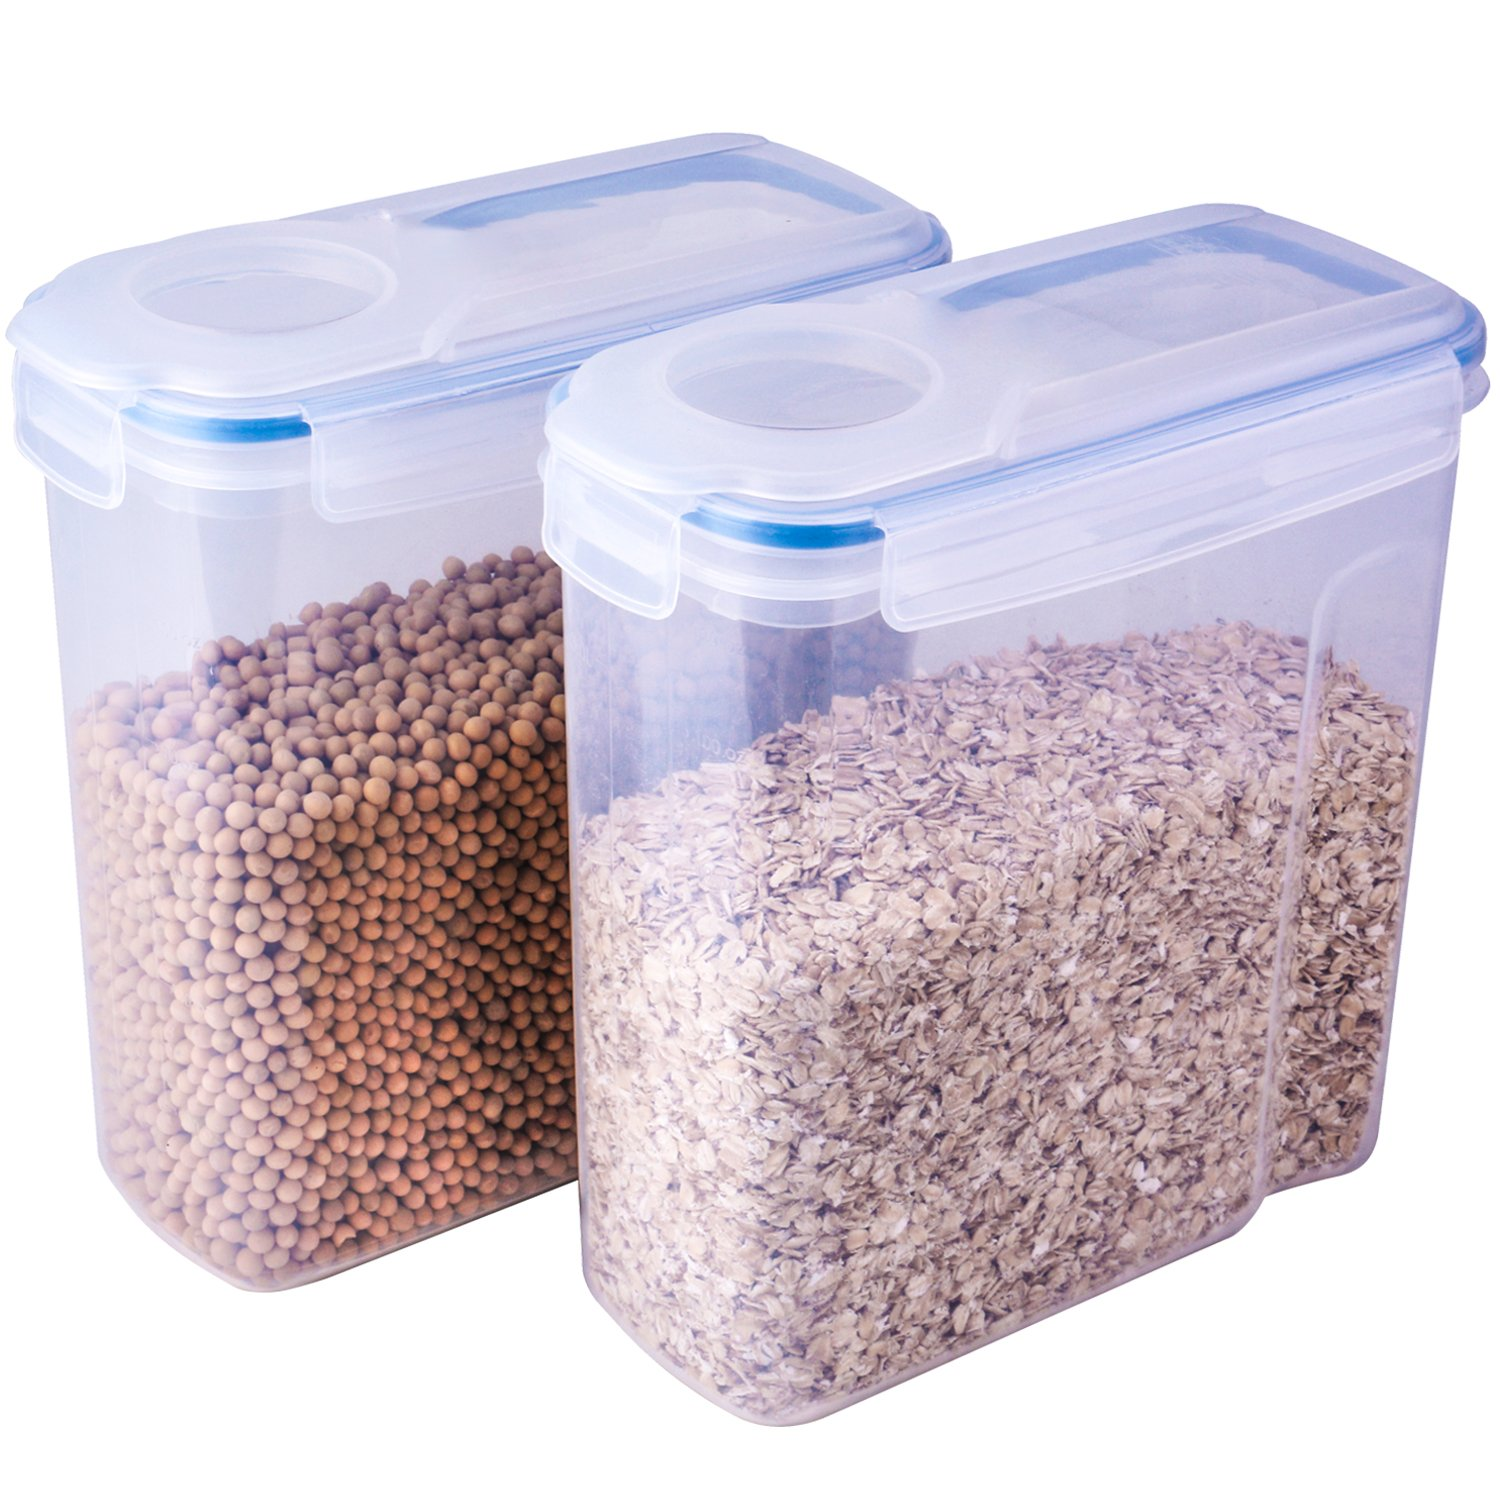 THETIS Homes Cereal Container,Watertight and Airtight Dispenser with 4 Locking Lids,4L ,135.2 Oz